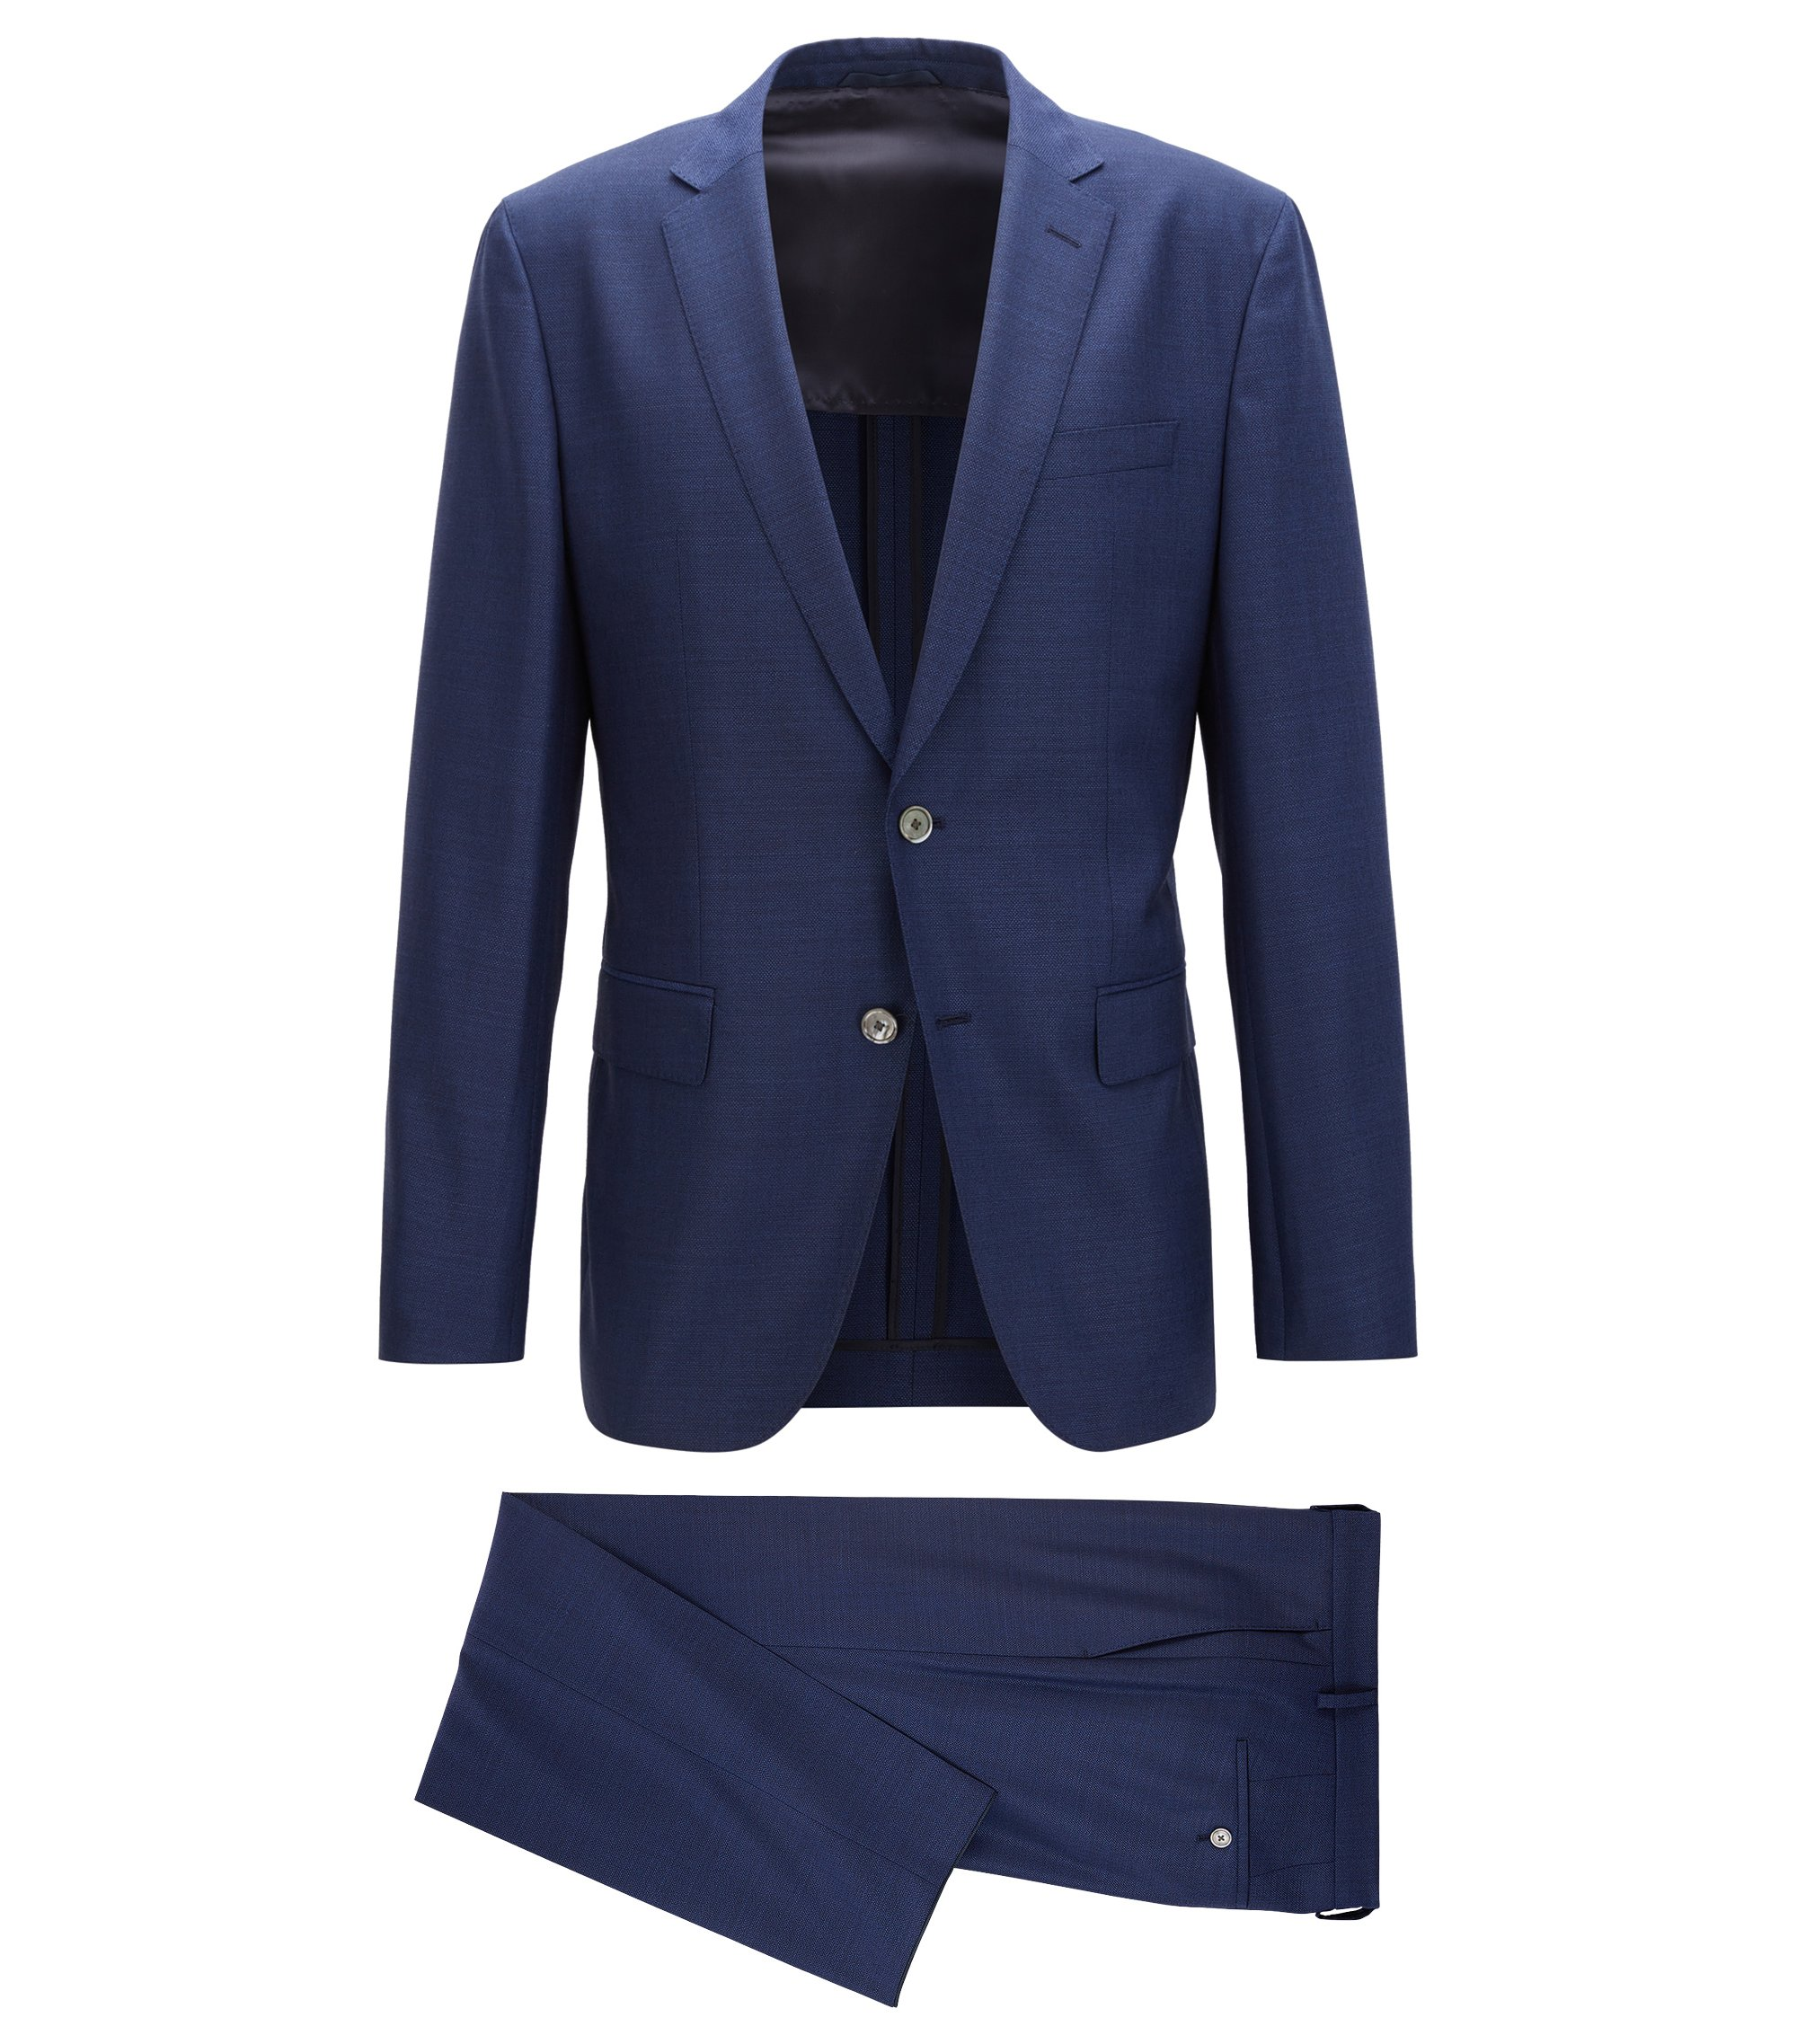 Virgin Wool Silk Suit, Slim Fit | Helford/Gander, Blue